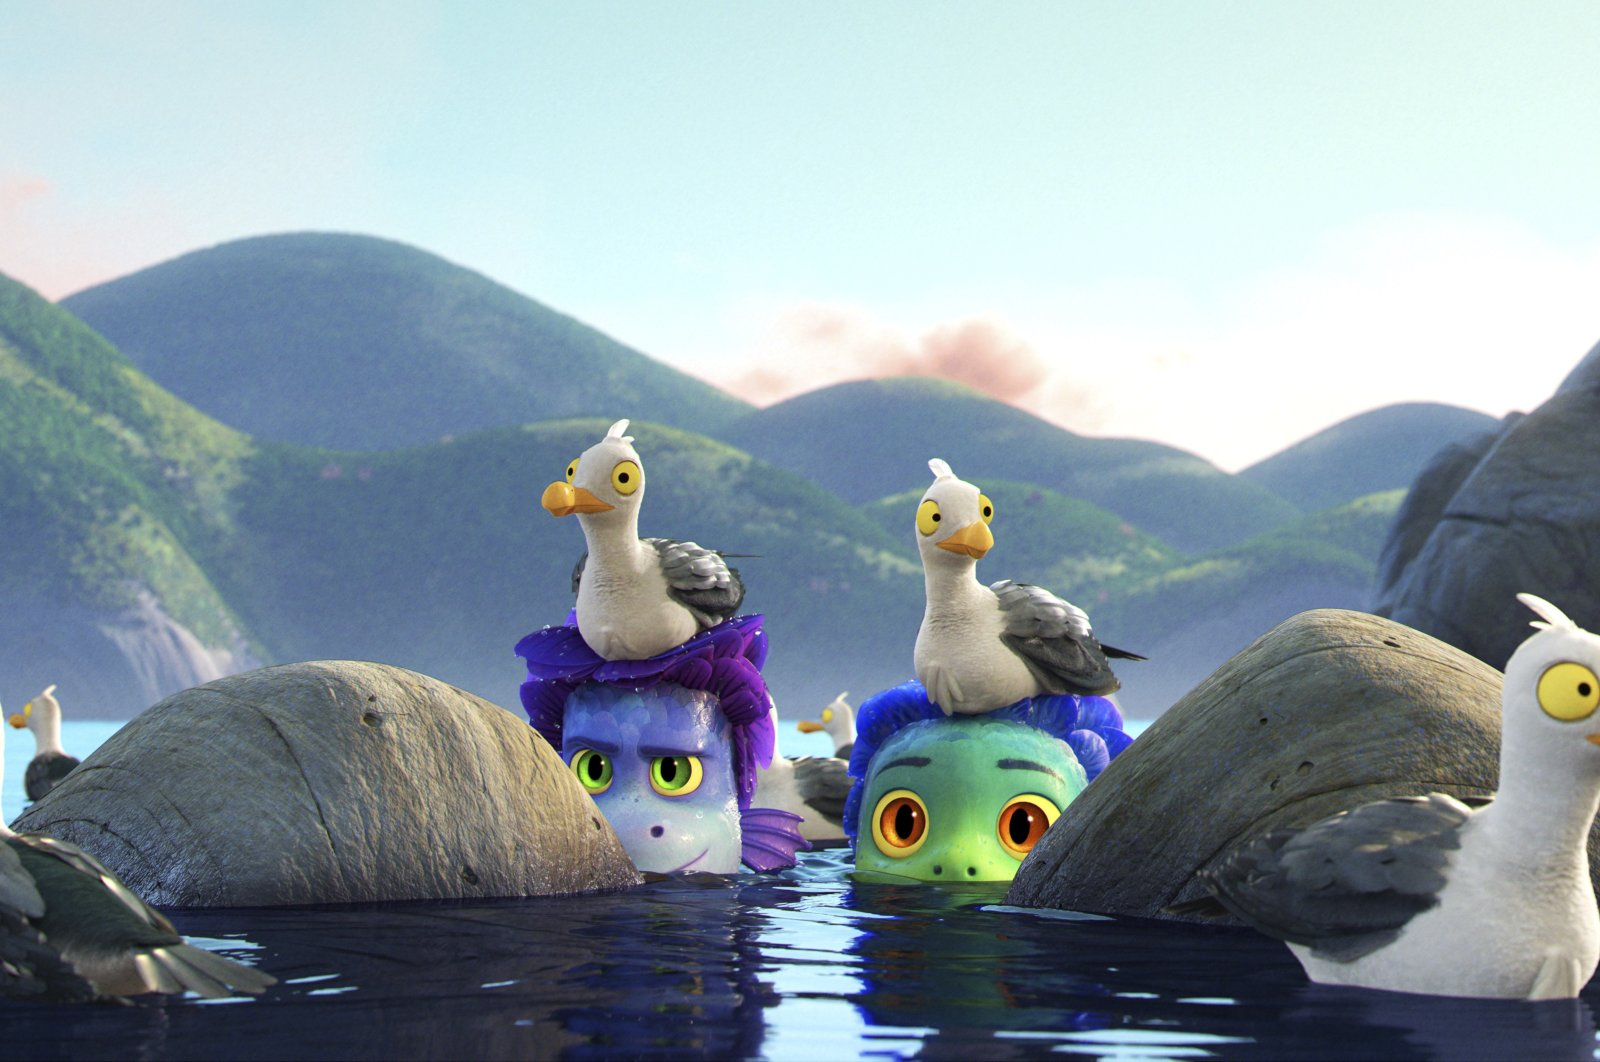 """Alberto (C-L), voiced by Jack Dylan Grazer, and Luca (C-R), voiced by Jacob Tremblay, come out of the water as they are surrounded by seagulls in a scene from the animated film """"Luca."""" (Photo by Disney via AP)"""